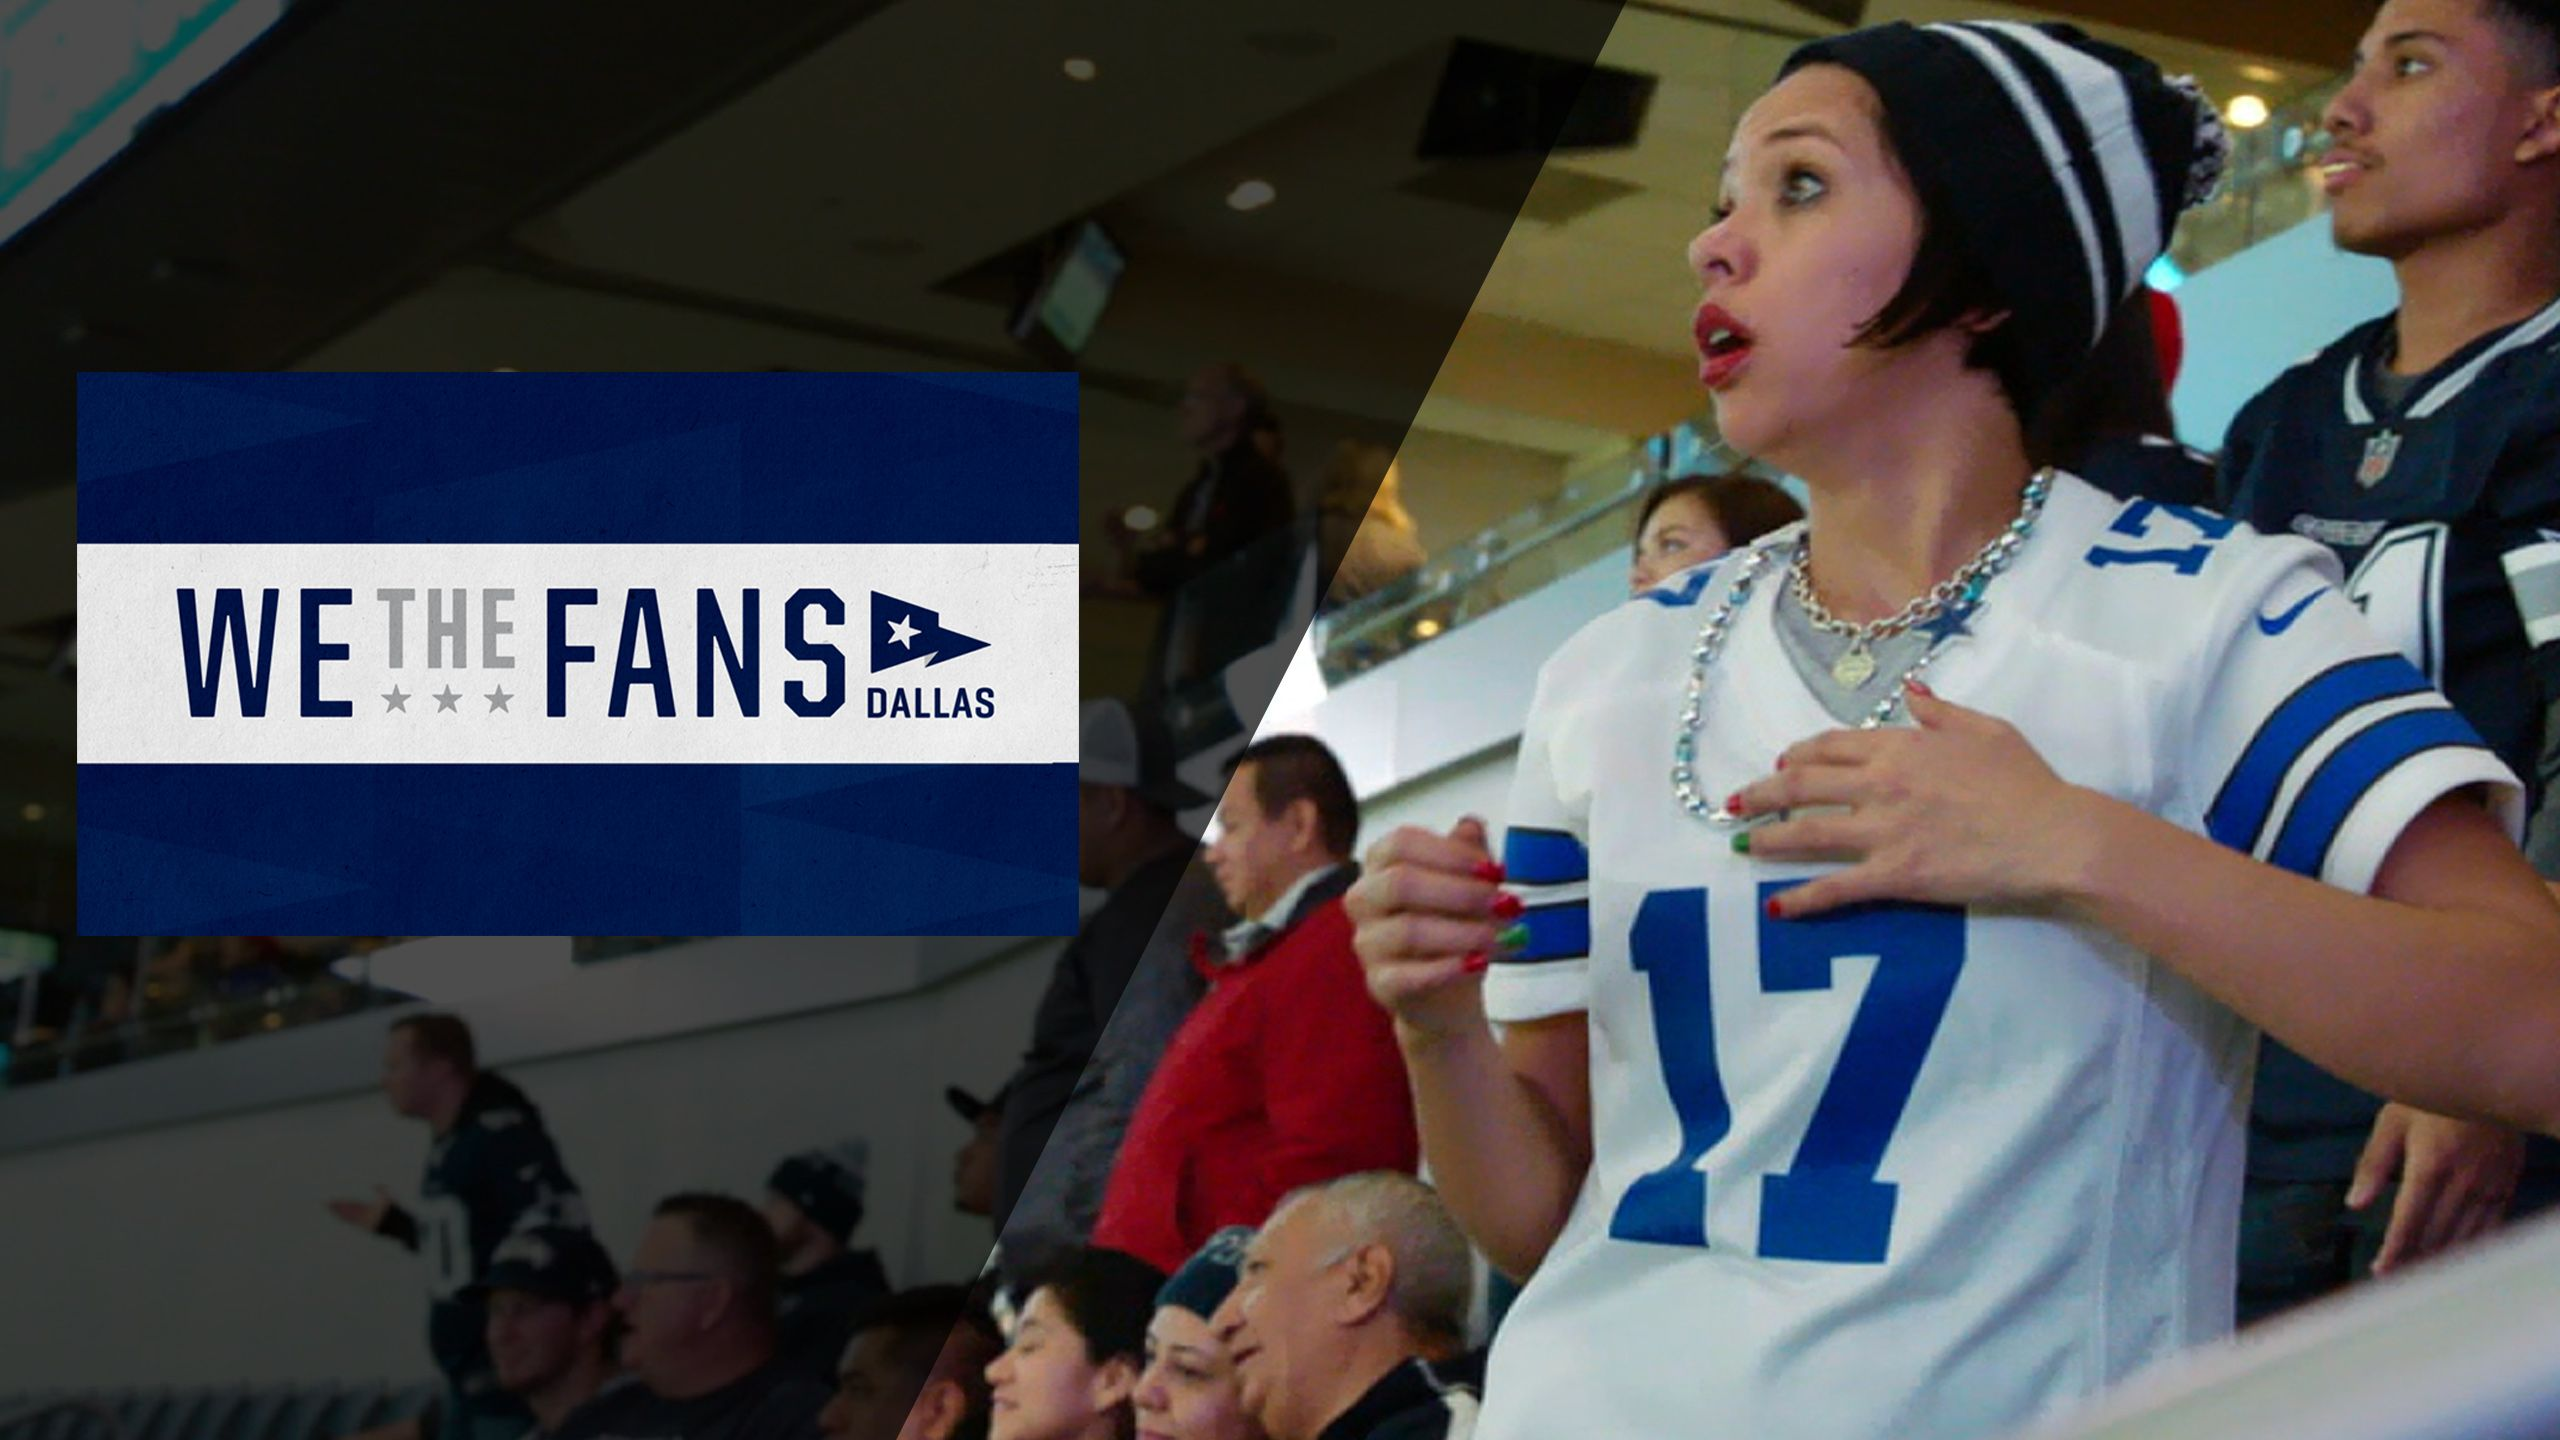 We the Fans: Dallas presented by Meguiar's (Episode 4)